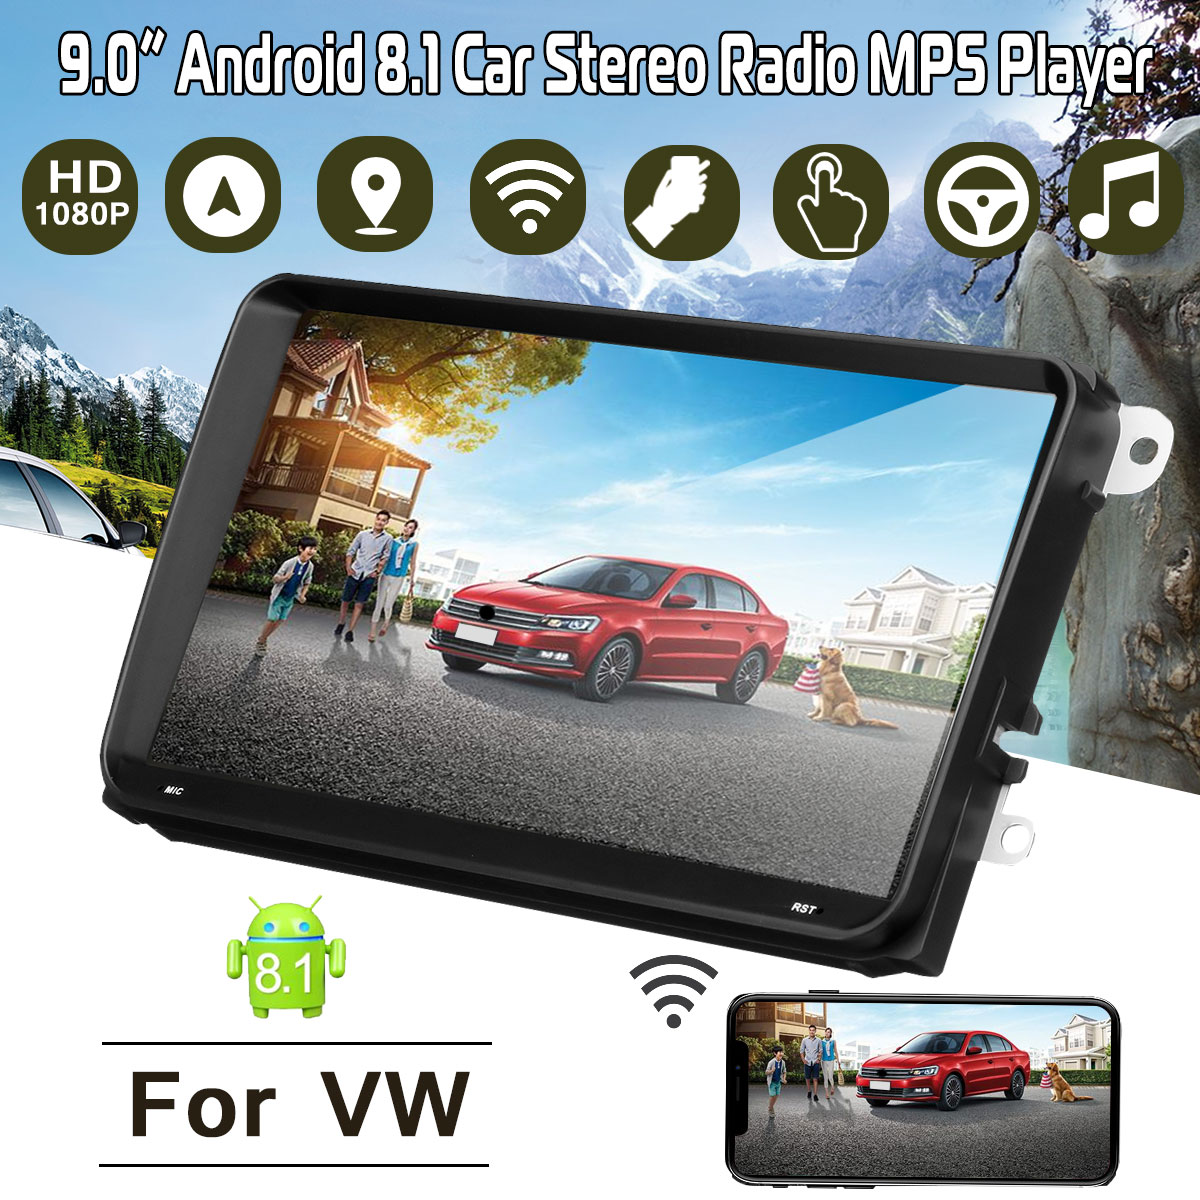 Car Radio Multimedia 9 Android 8.1 car dvd audio stereo player Navigation for For VW wifi GPS RDS Stereo Radio MP5 PlayerCar Radio Multimedia 9 Android 8.1 car dvd audio stereo player Navigation for For VW wifi GPS RDS Stereo Radio MP5 Player